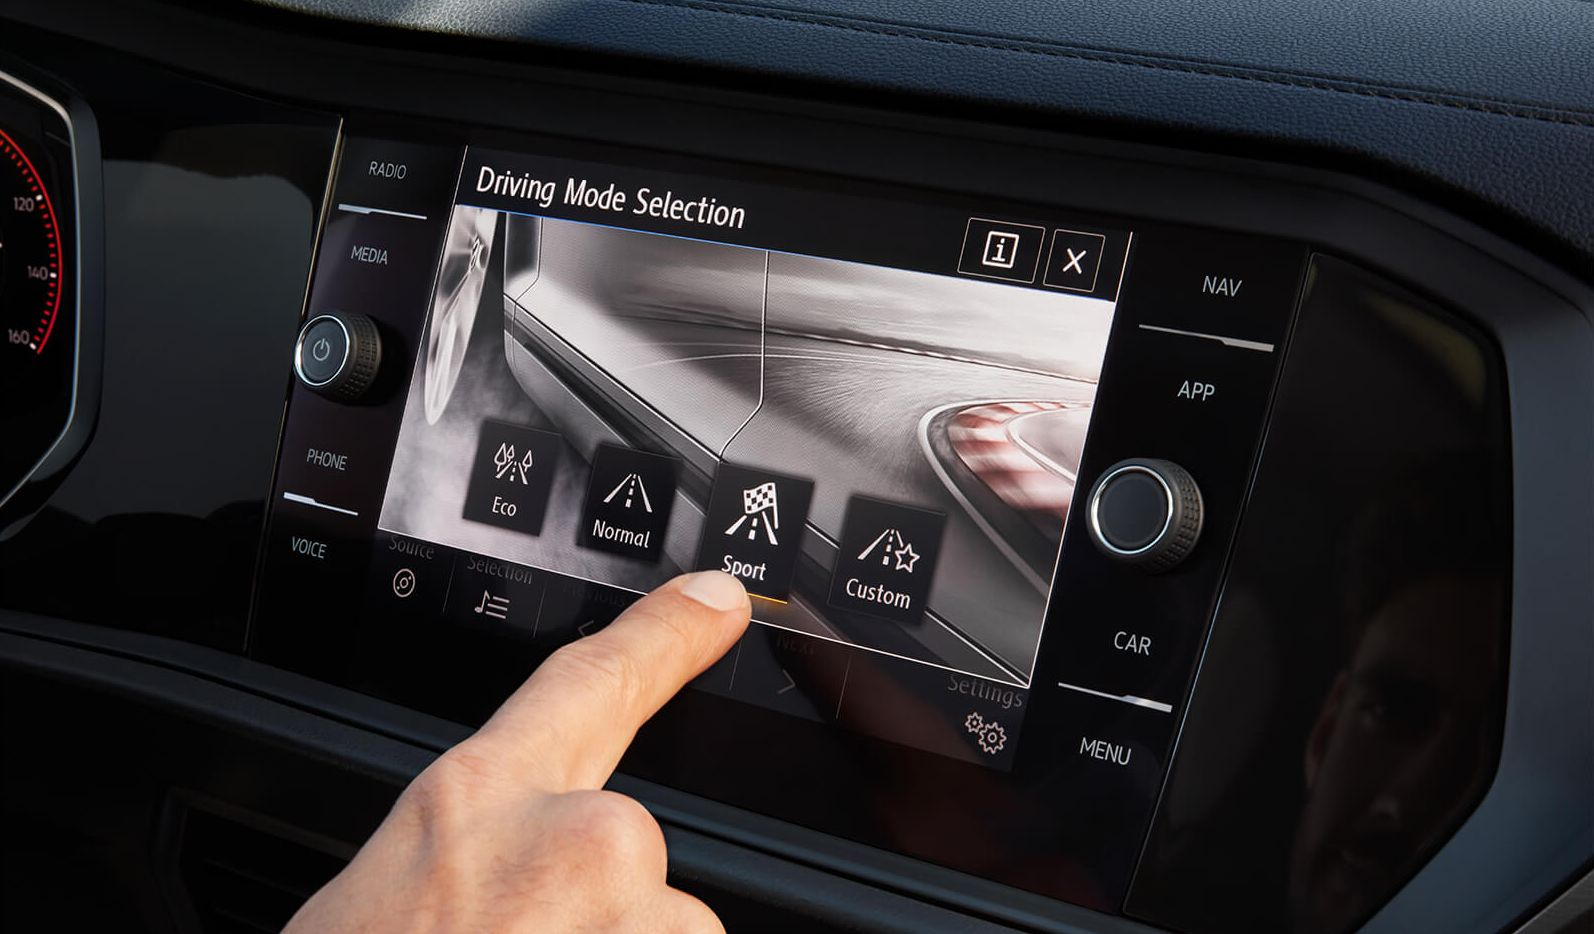 Touchscreen in the 2019 Jetta